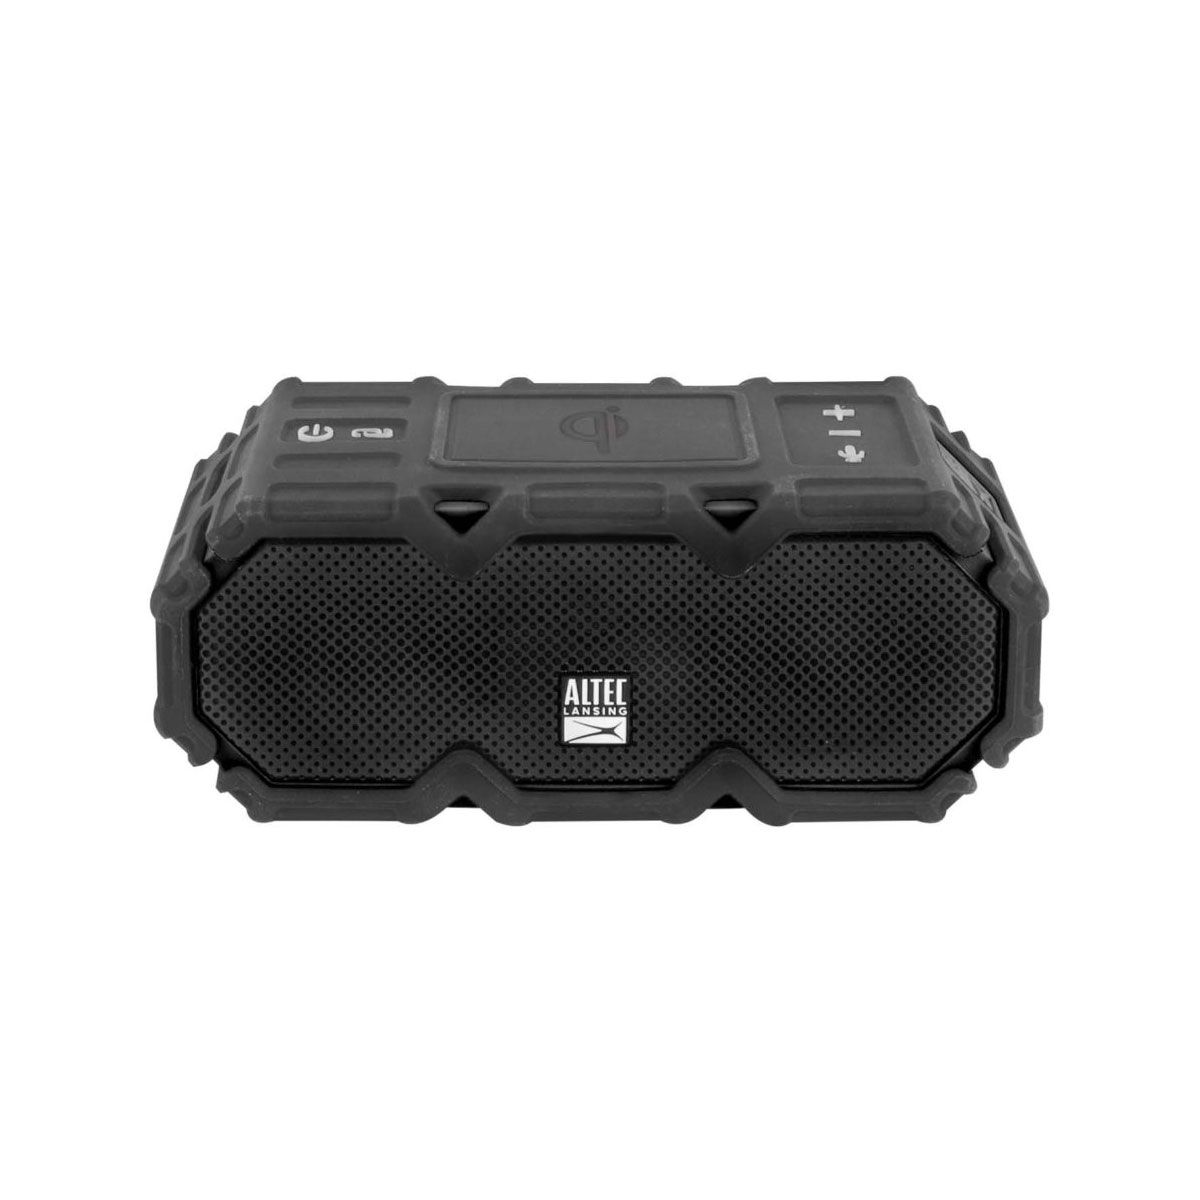 Altec Lansing – Lifejacket Jolt